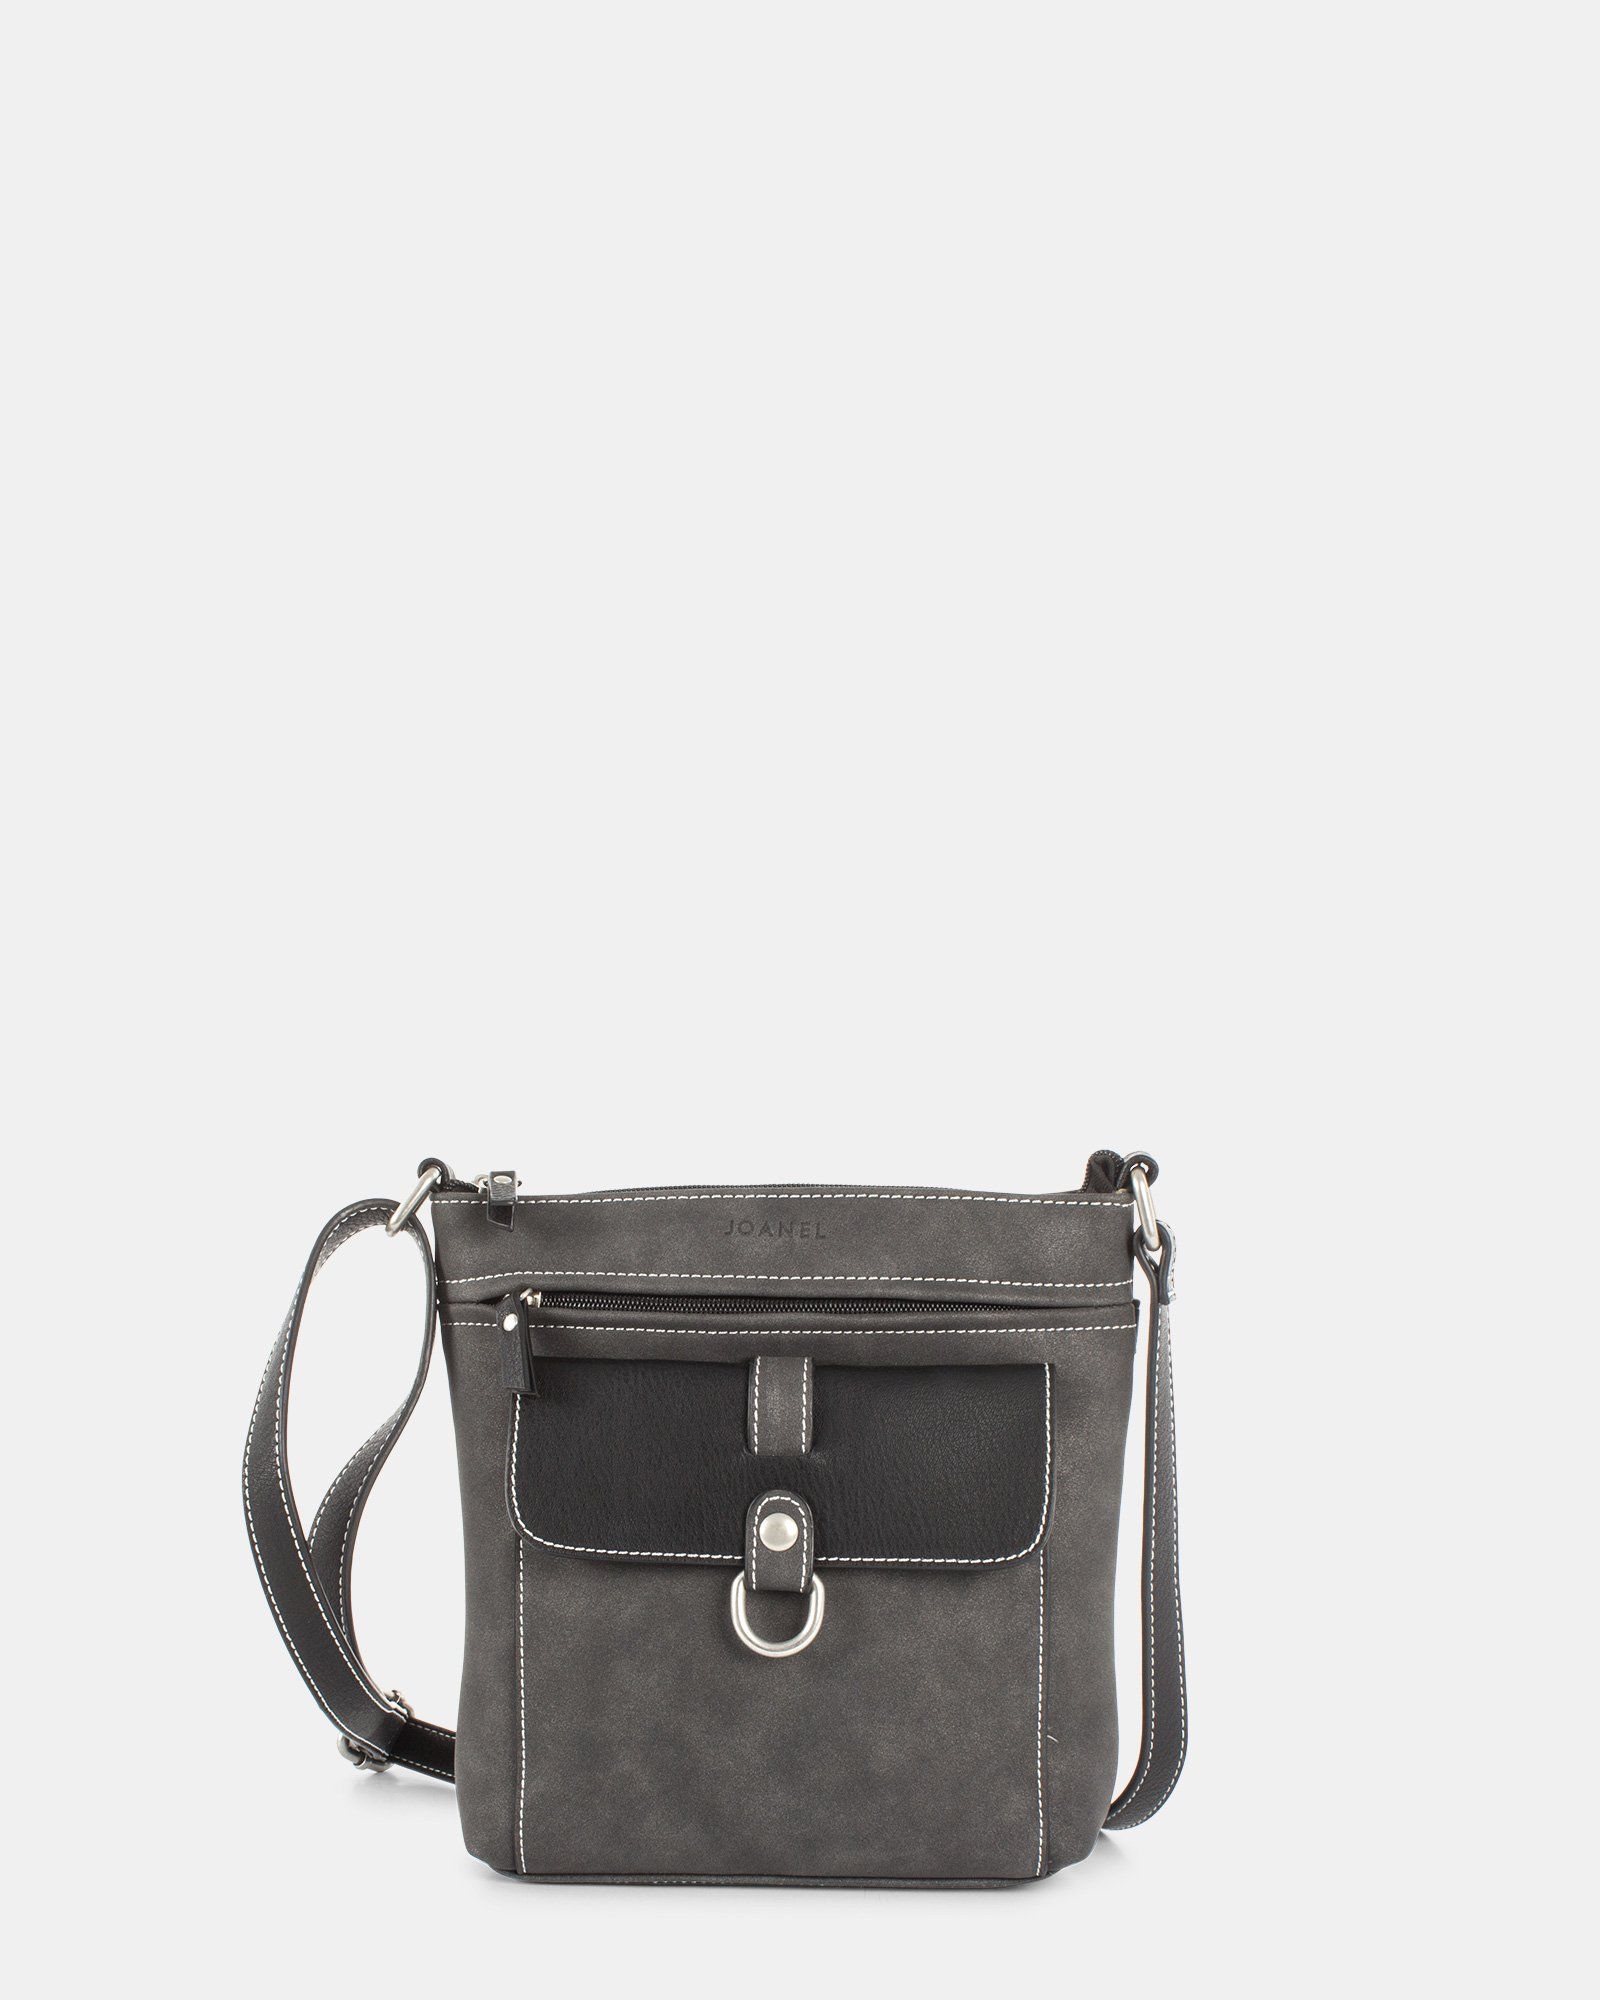 BRIDGET - Crossbody - Joanel - Zoom